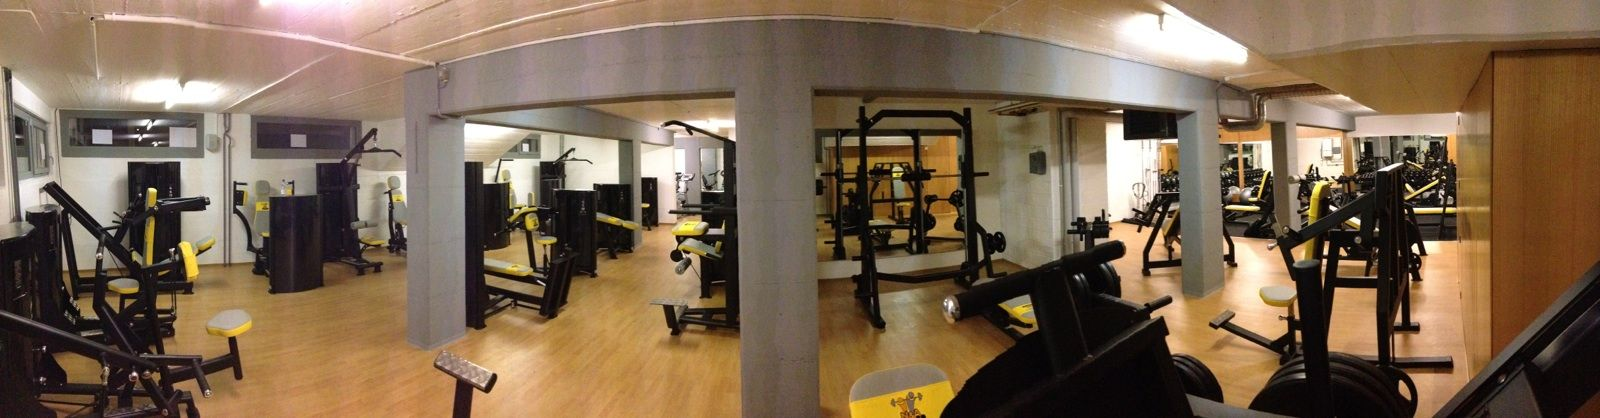 salle de fitness - N&A Fitness Coaching